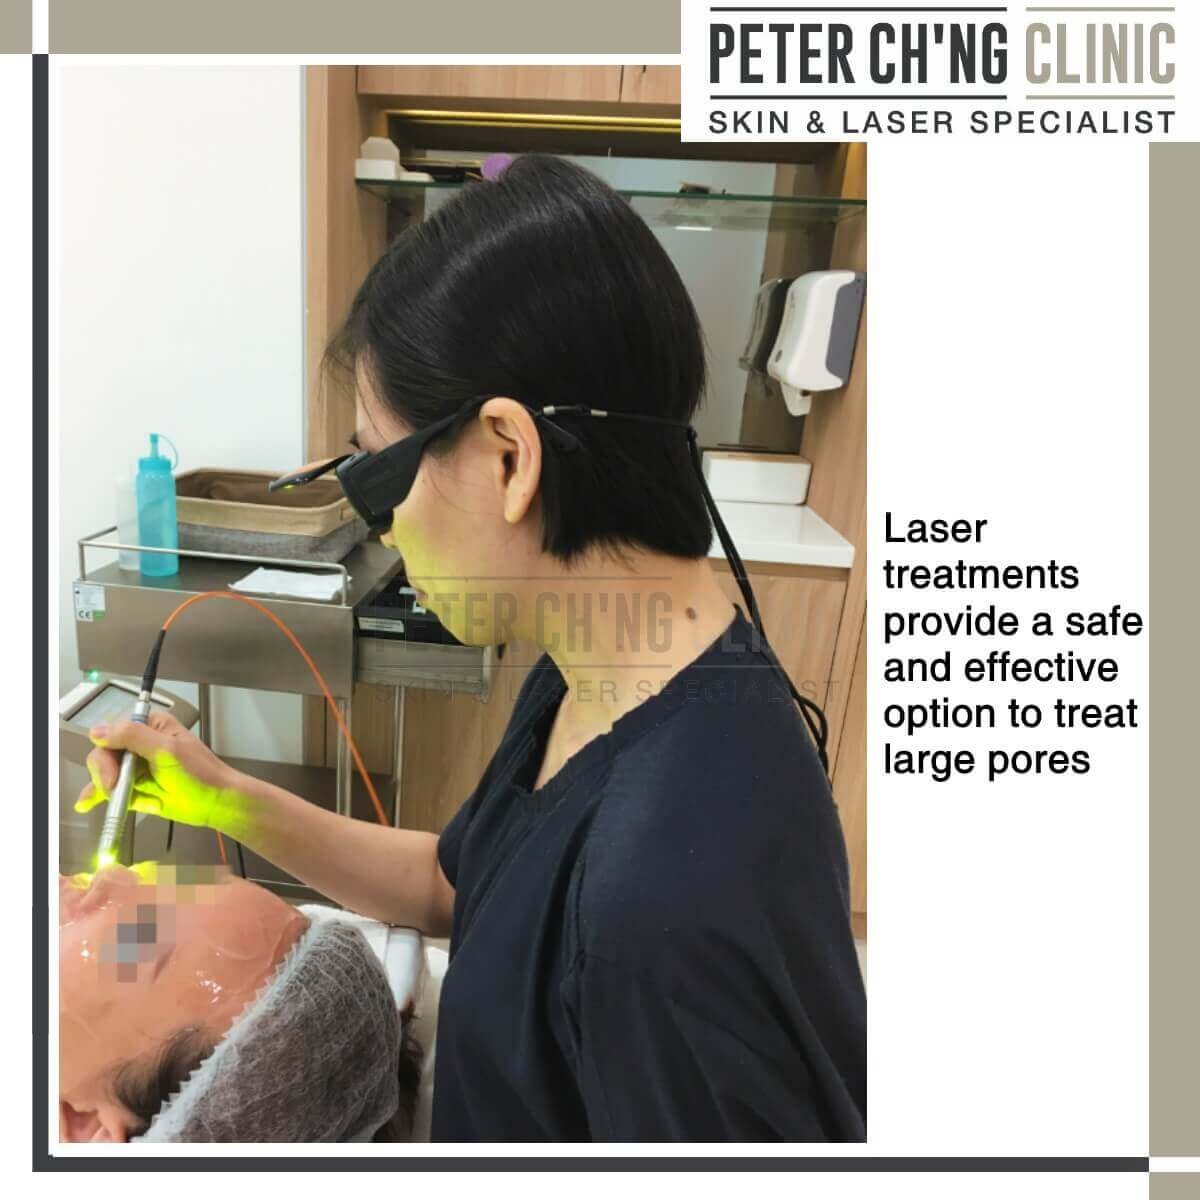 Laser treatment for large pores